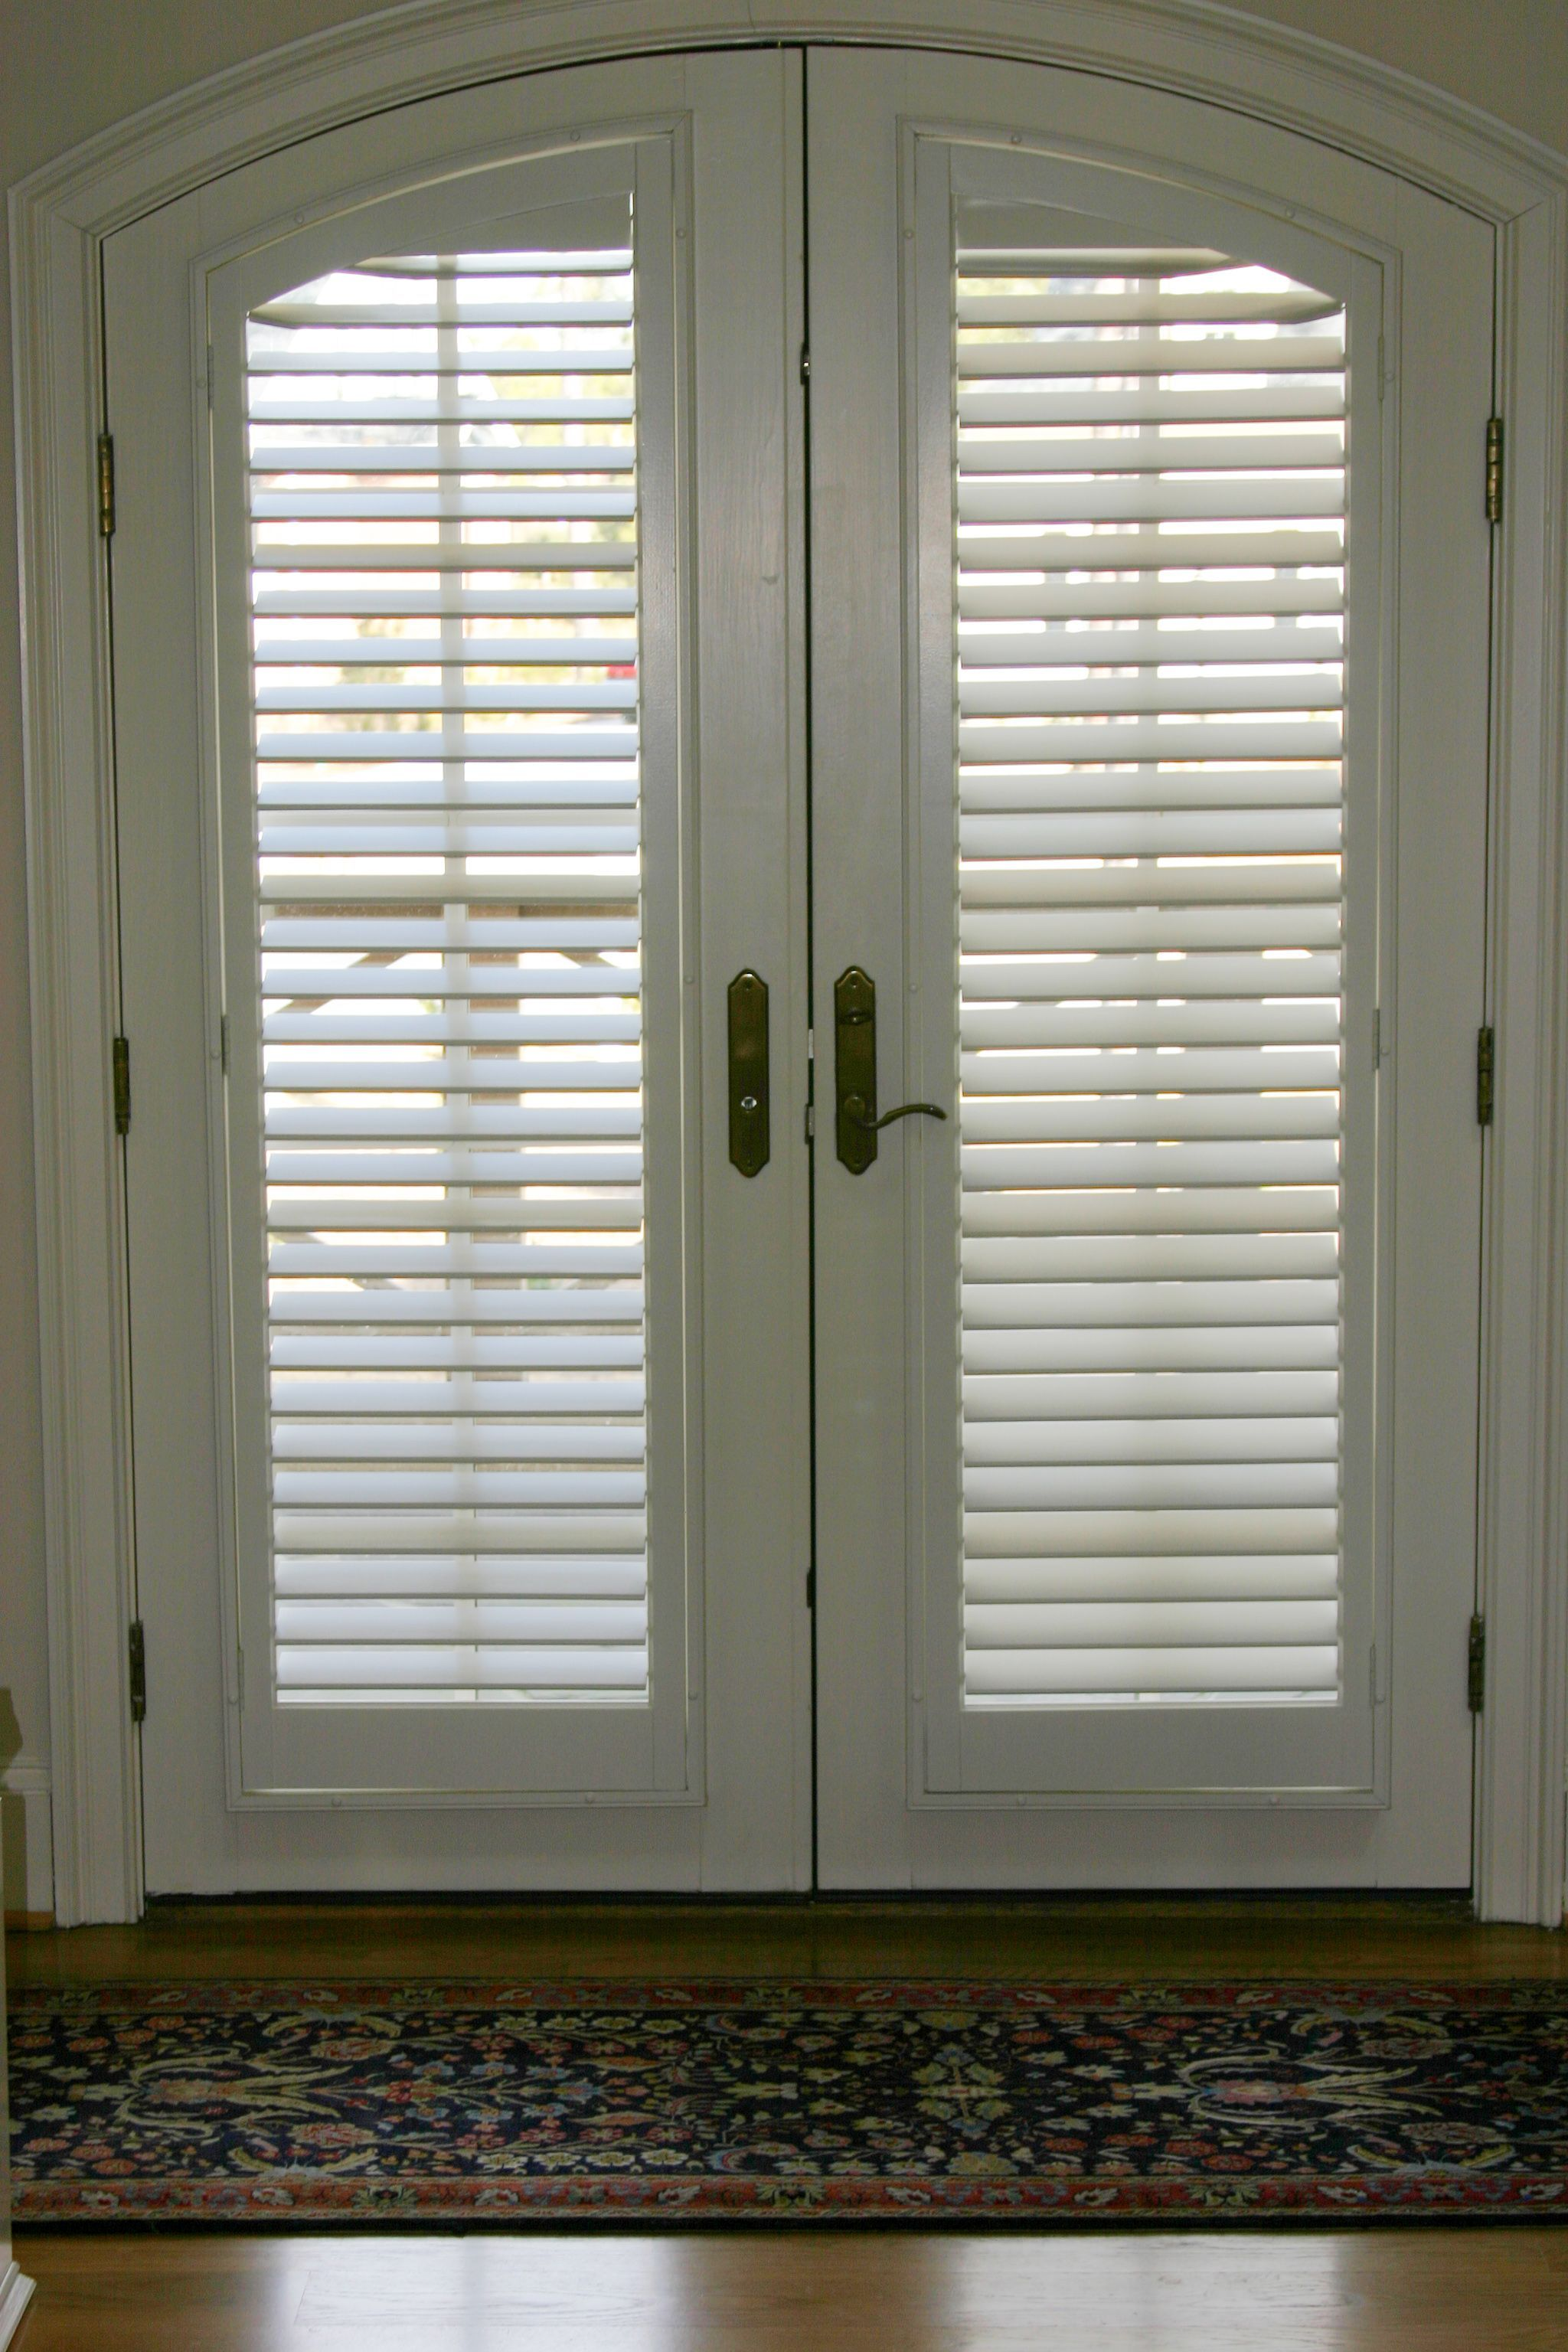 Beautiful French Doors With Arched Windows Covered Our Custom Plantation Shutters Look Great From The Inside And Outside Views